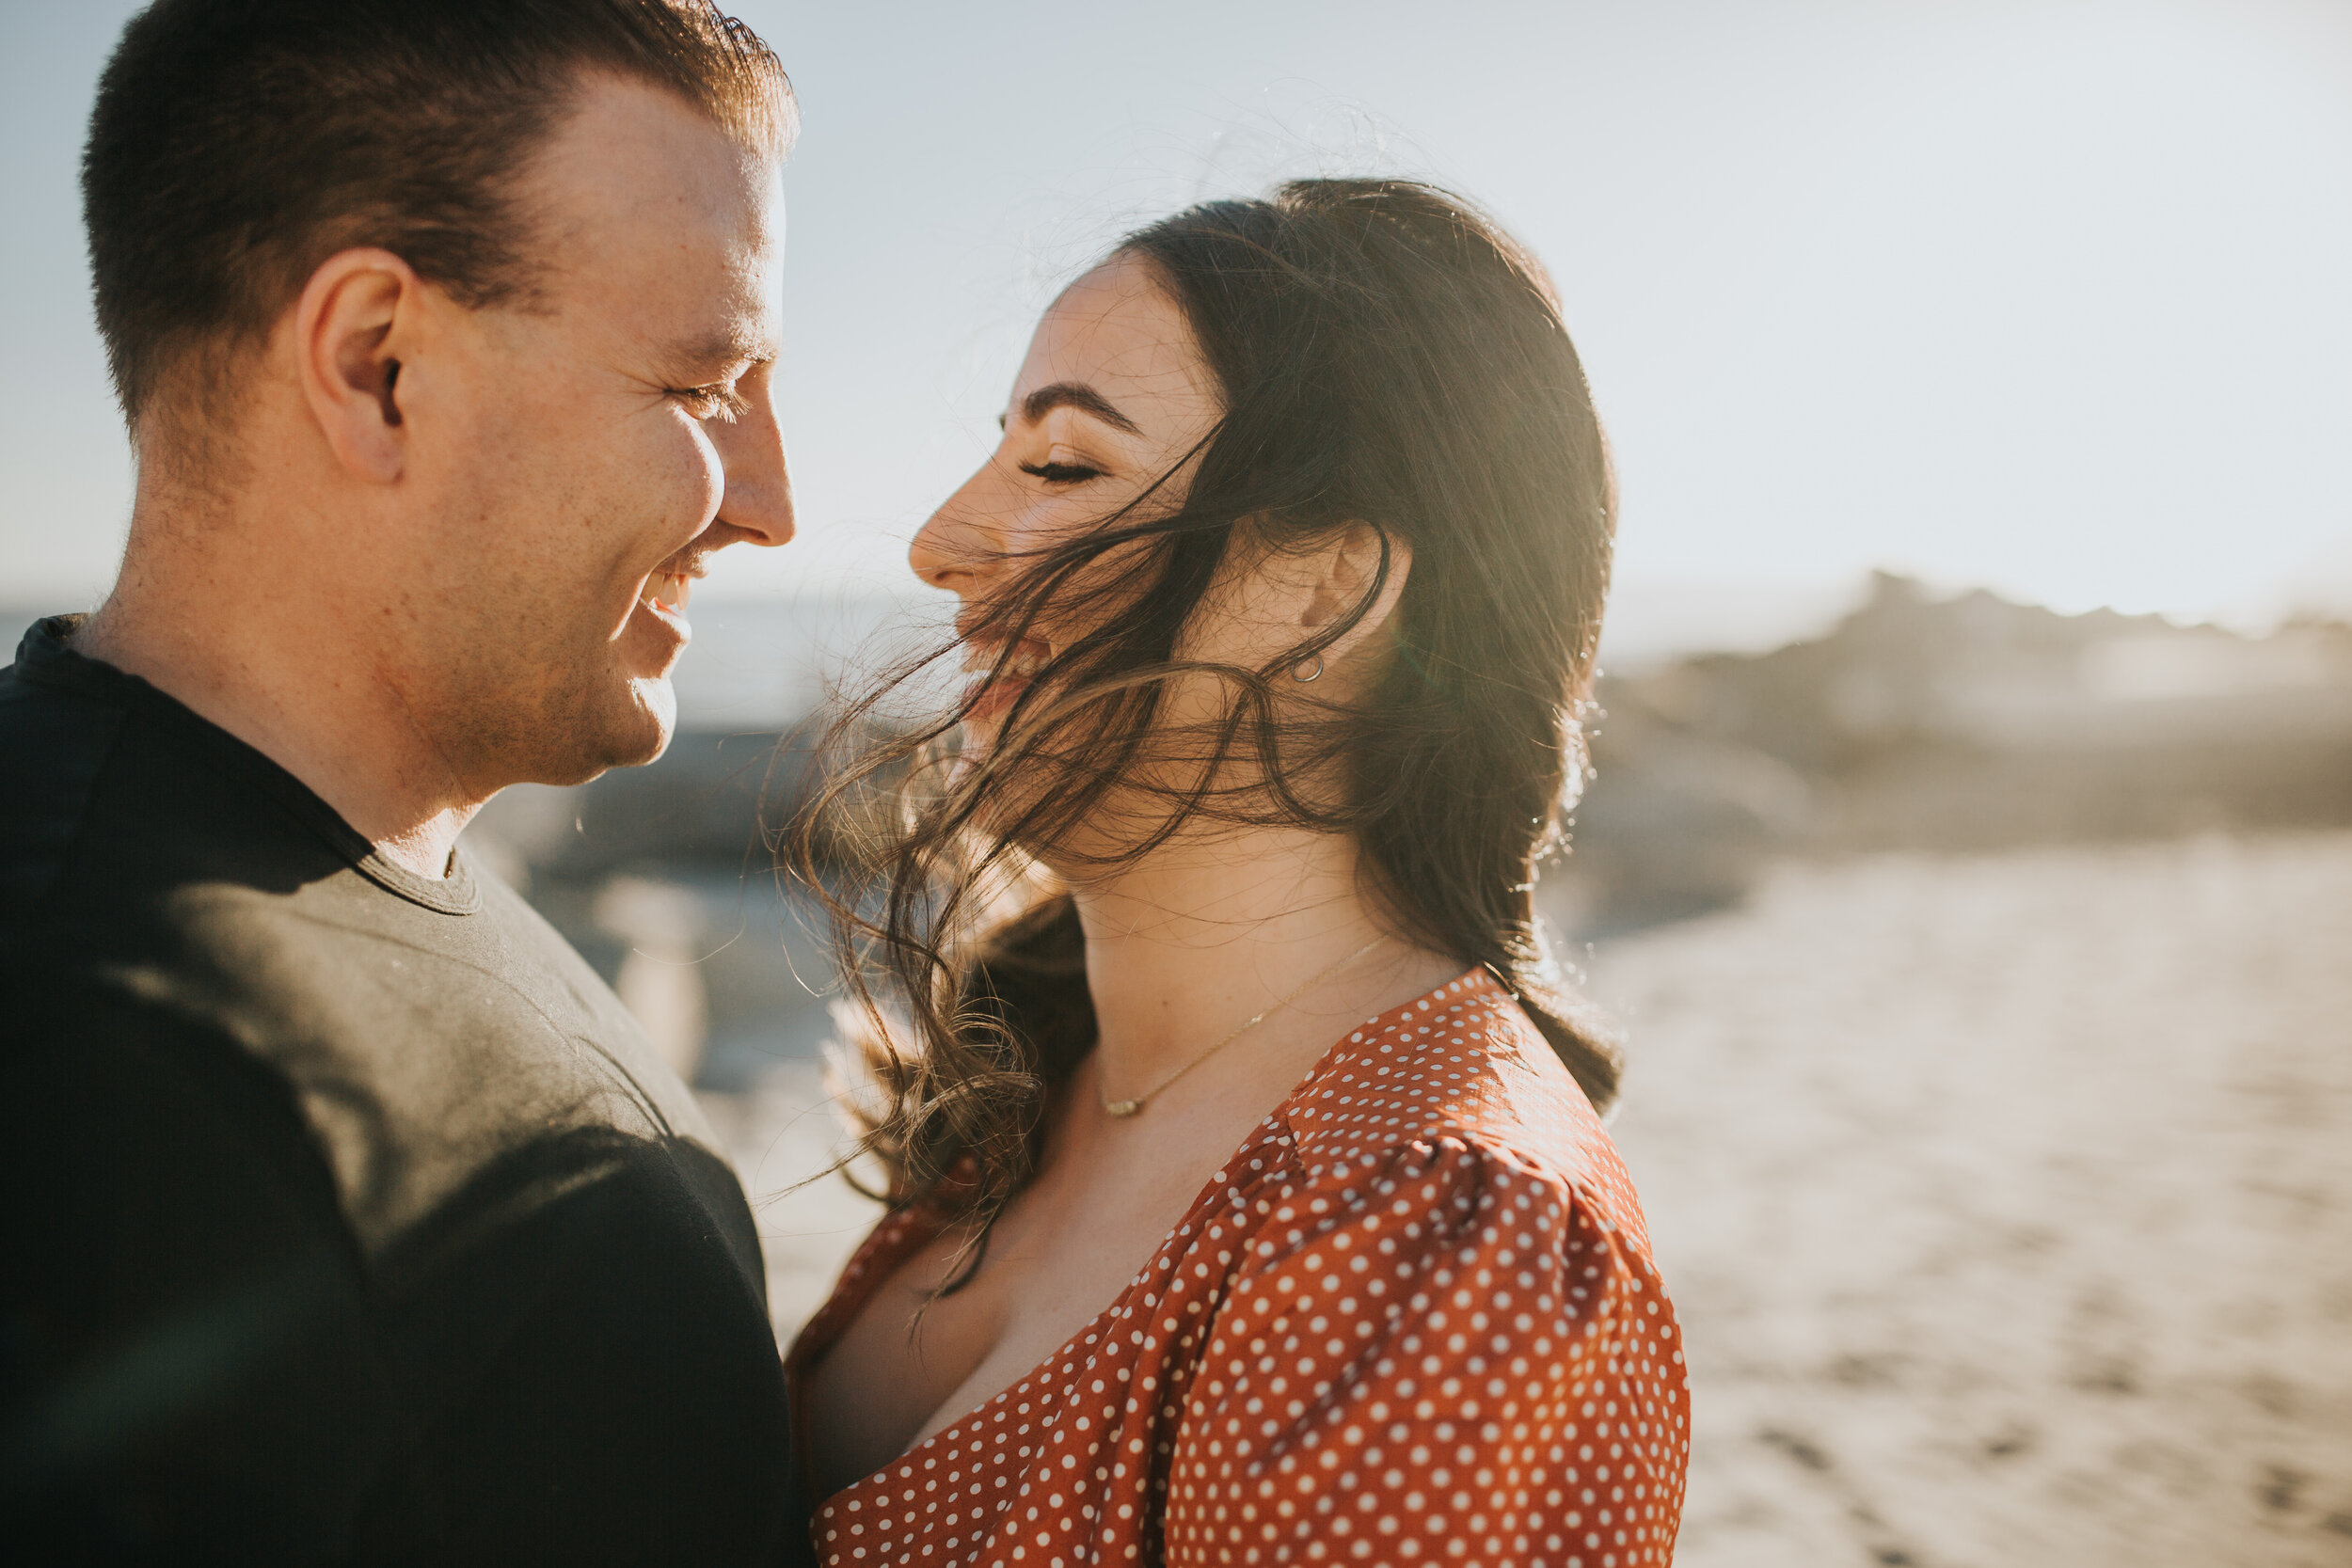 coronado-beach-engagement-session-valerielendvayphoto-007.jpg